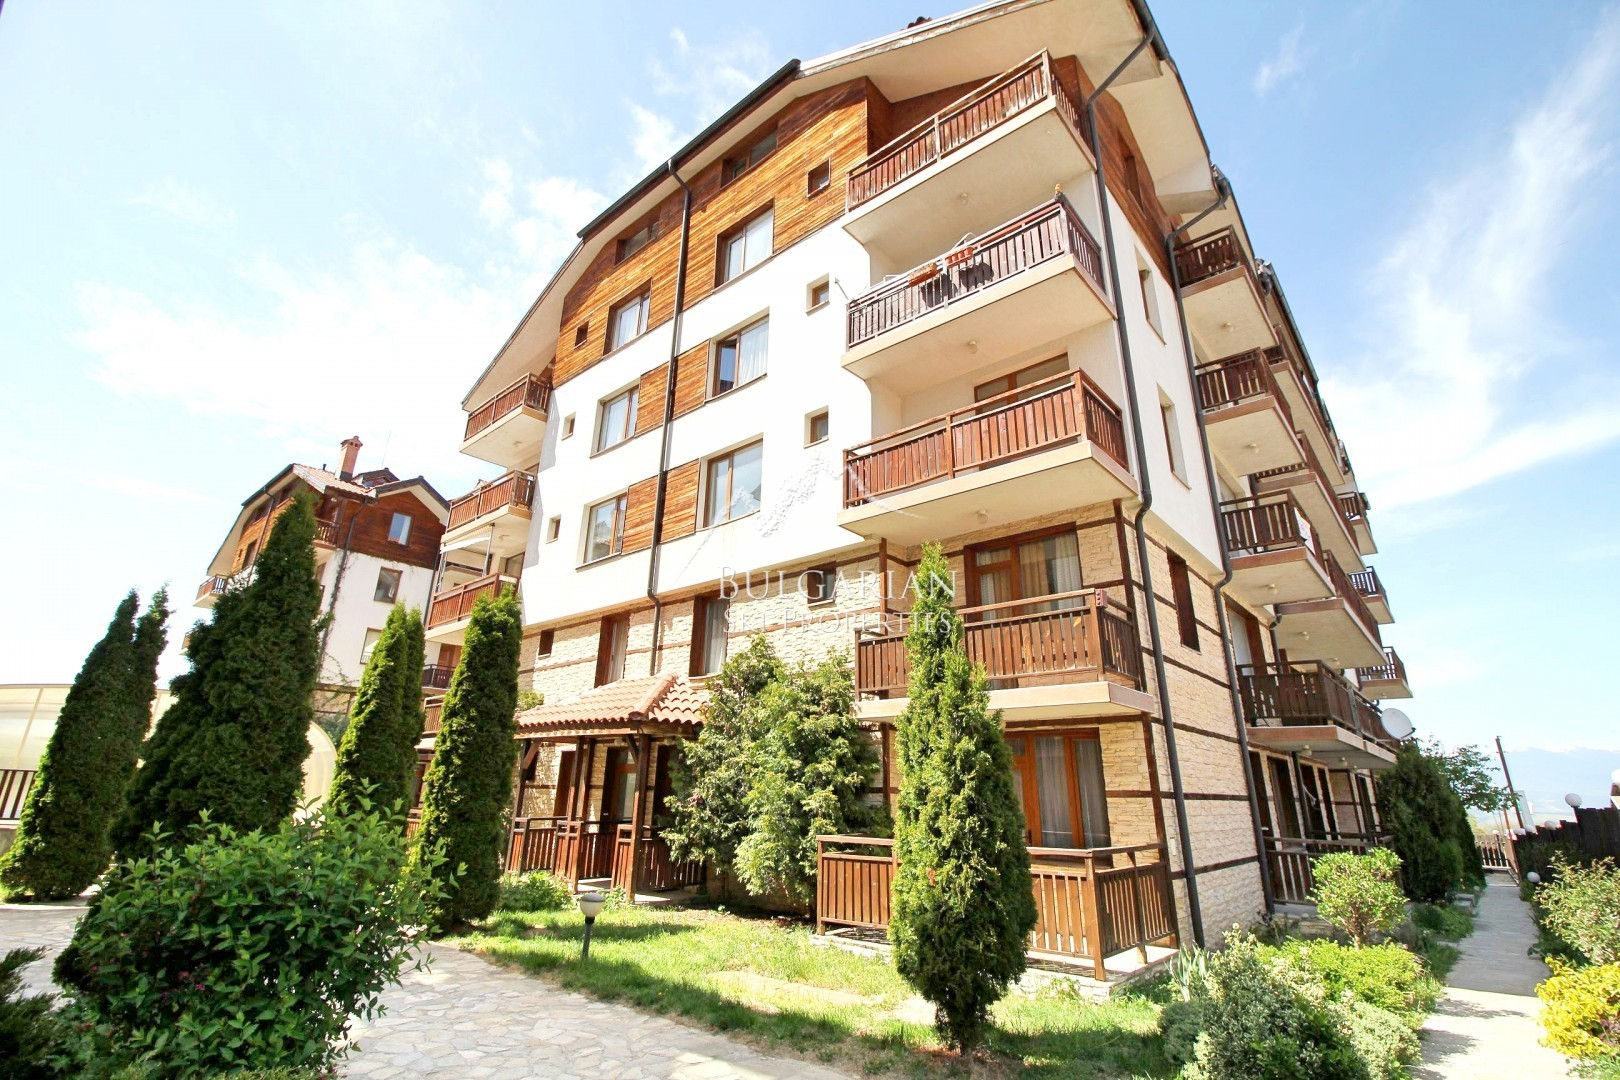 Bansko: bargain studio for sale in Four-leaf clover